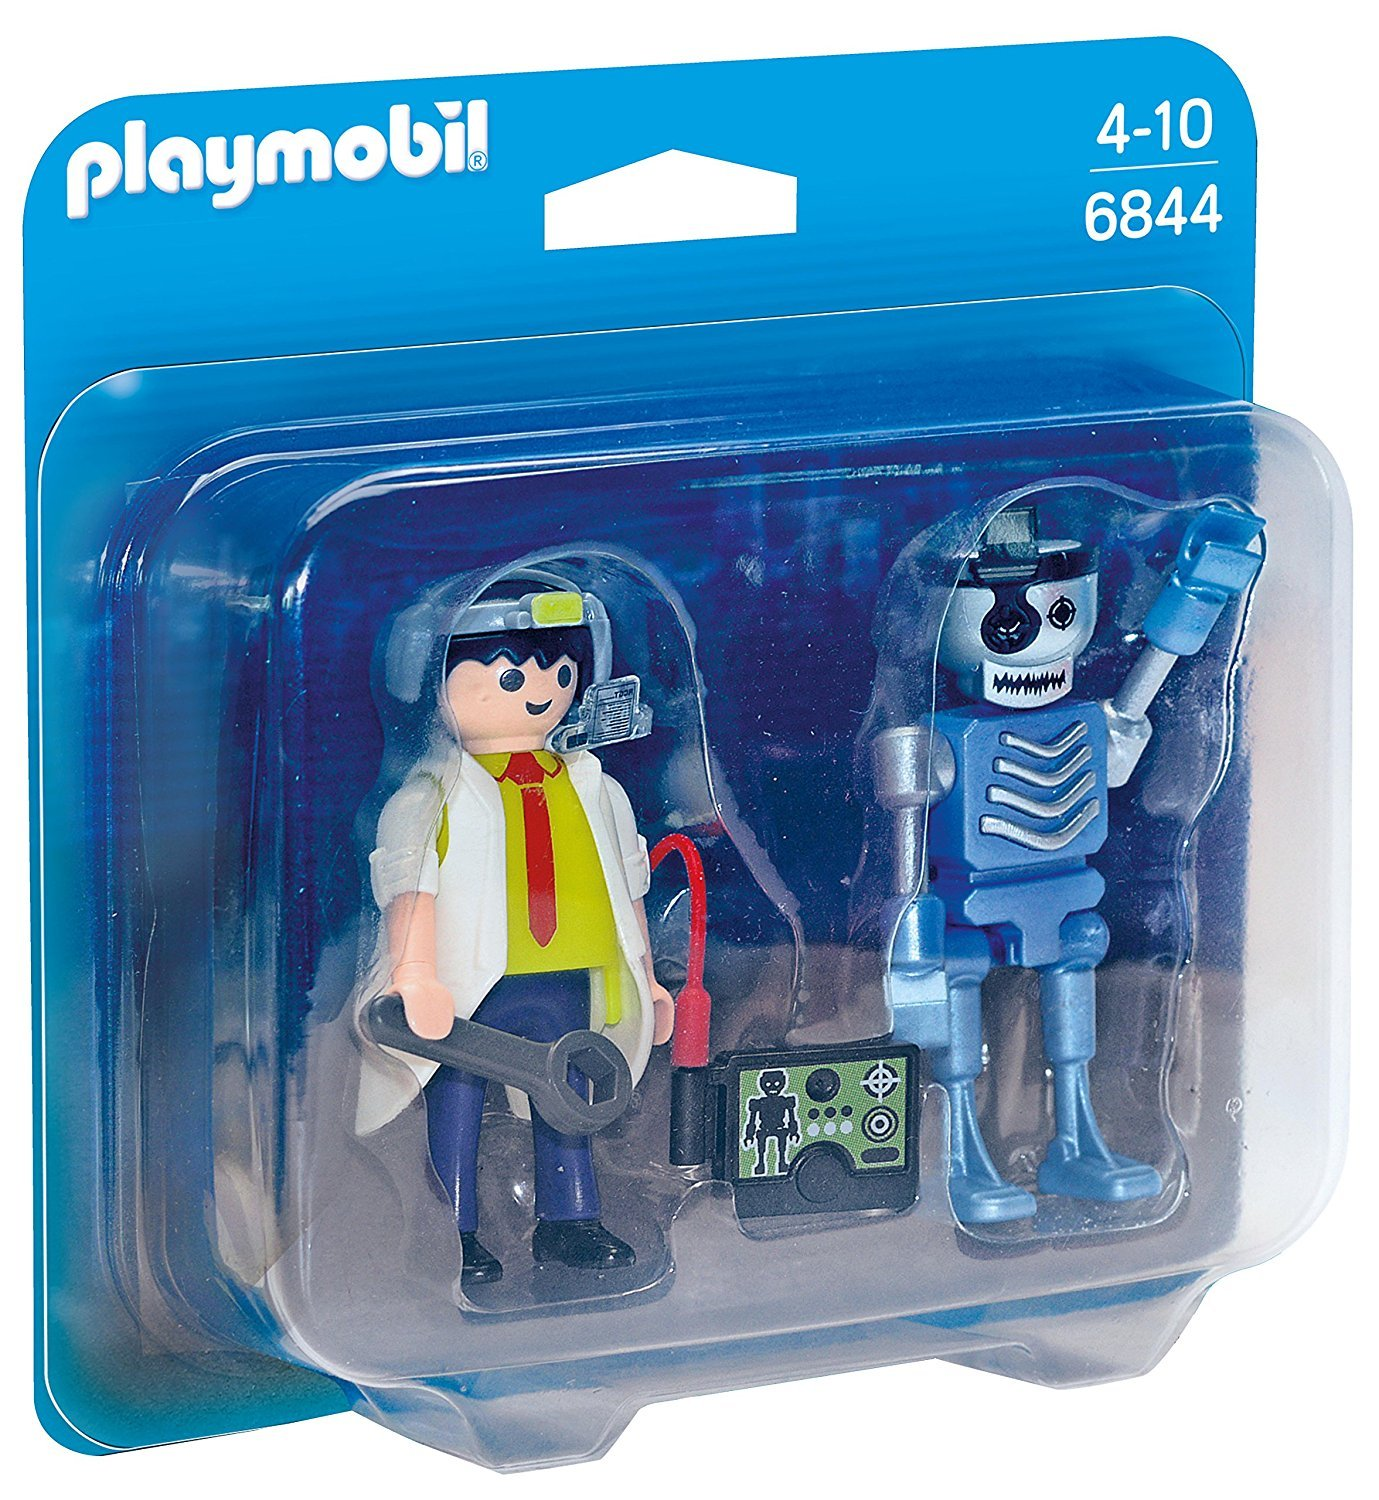 Playmobil: Scientist with Robot Duo Pack image